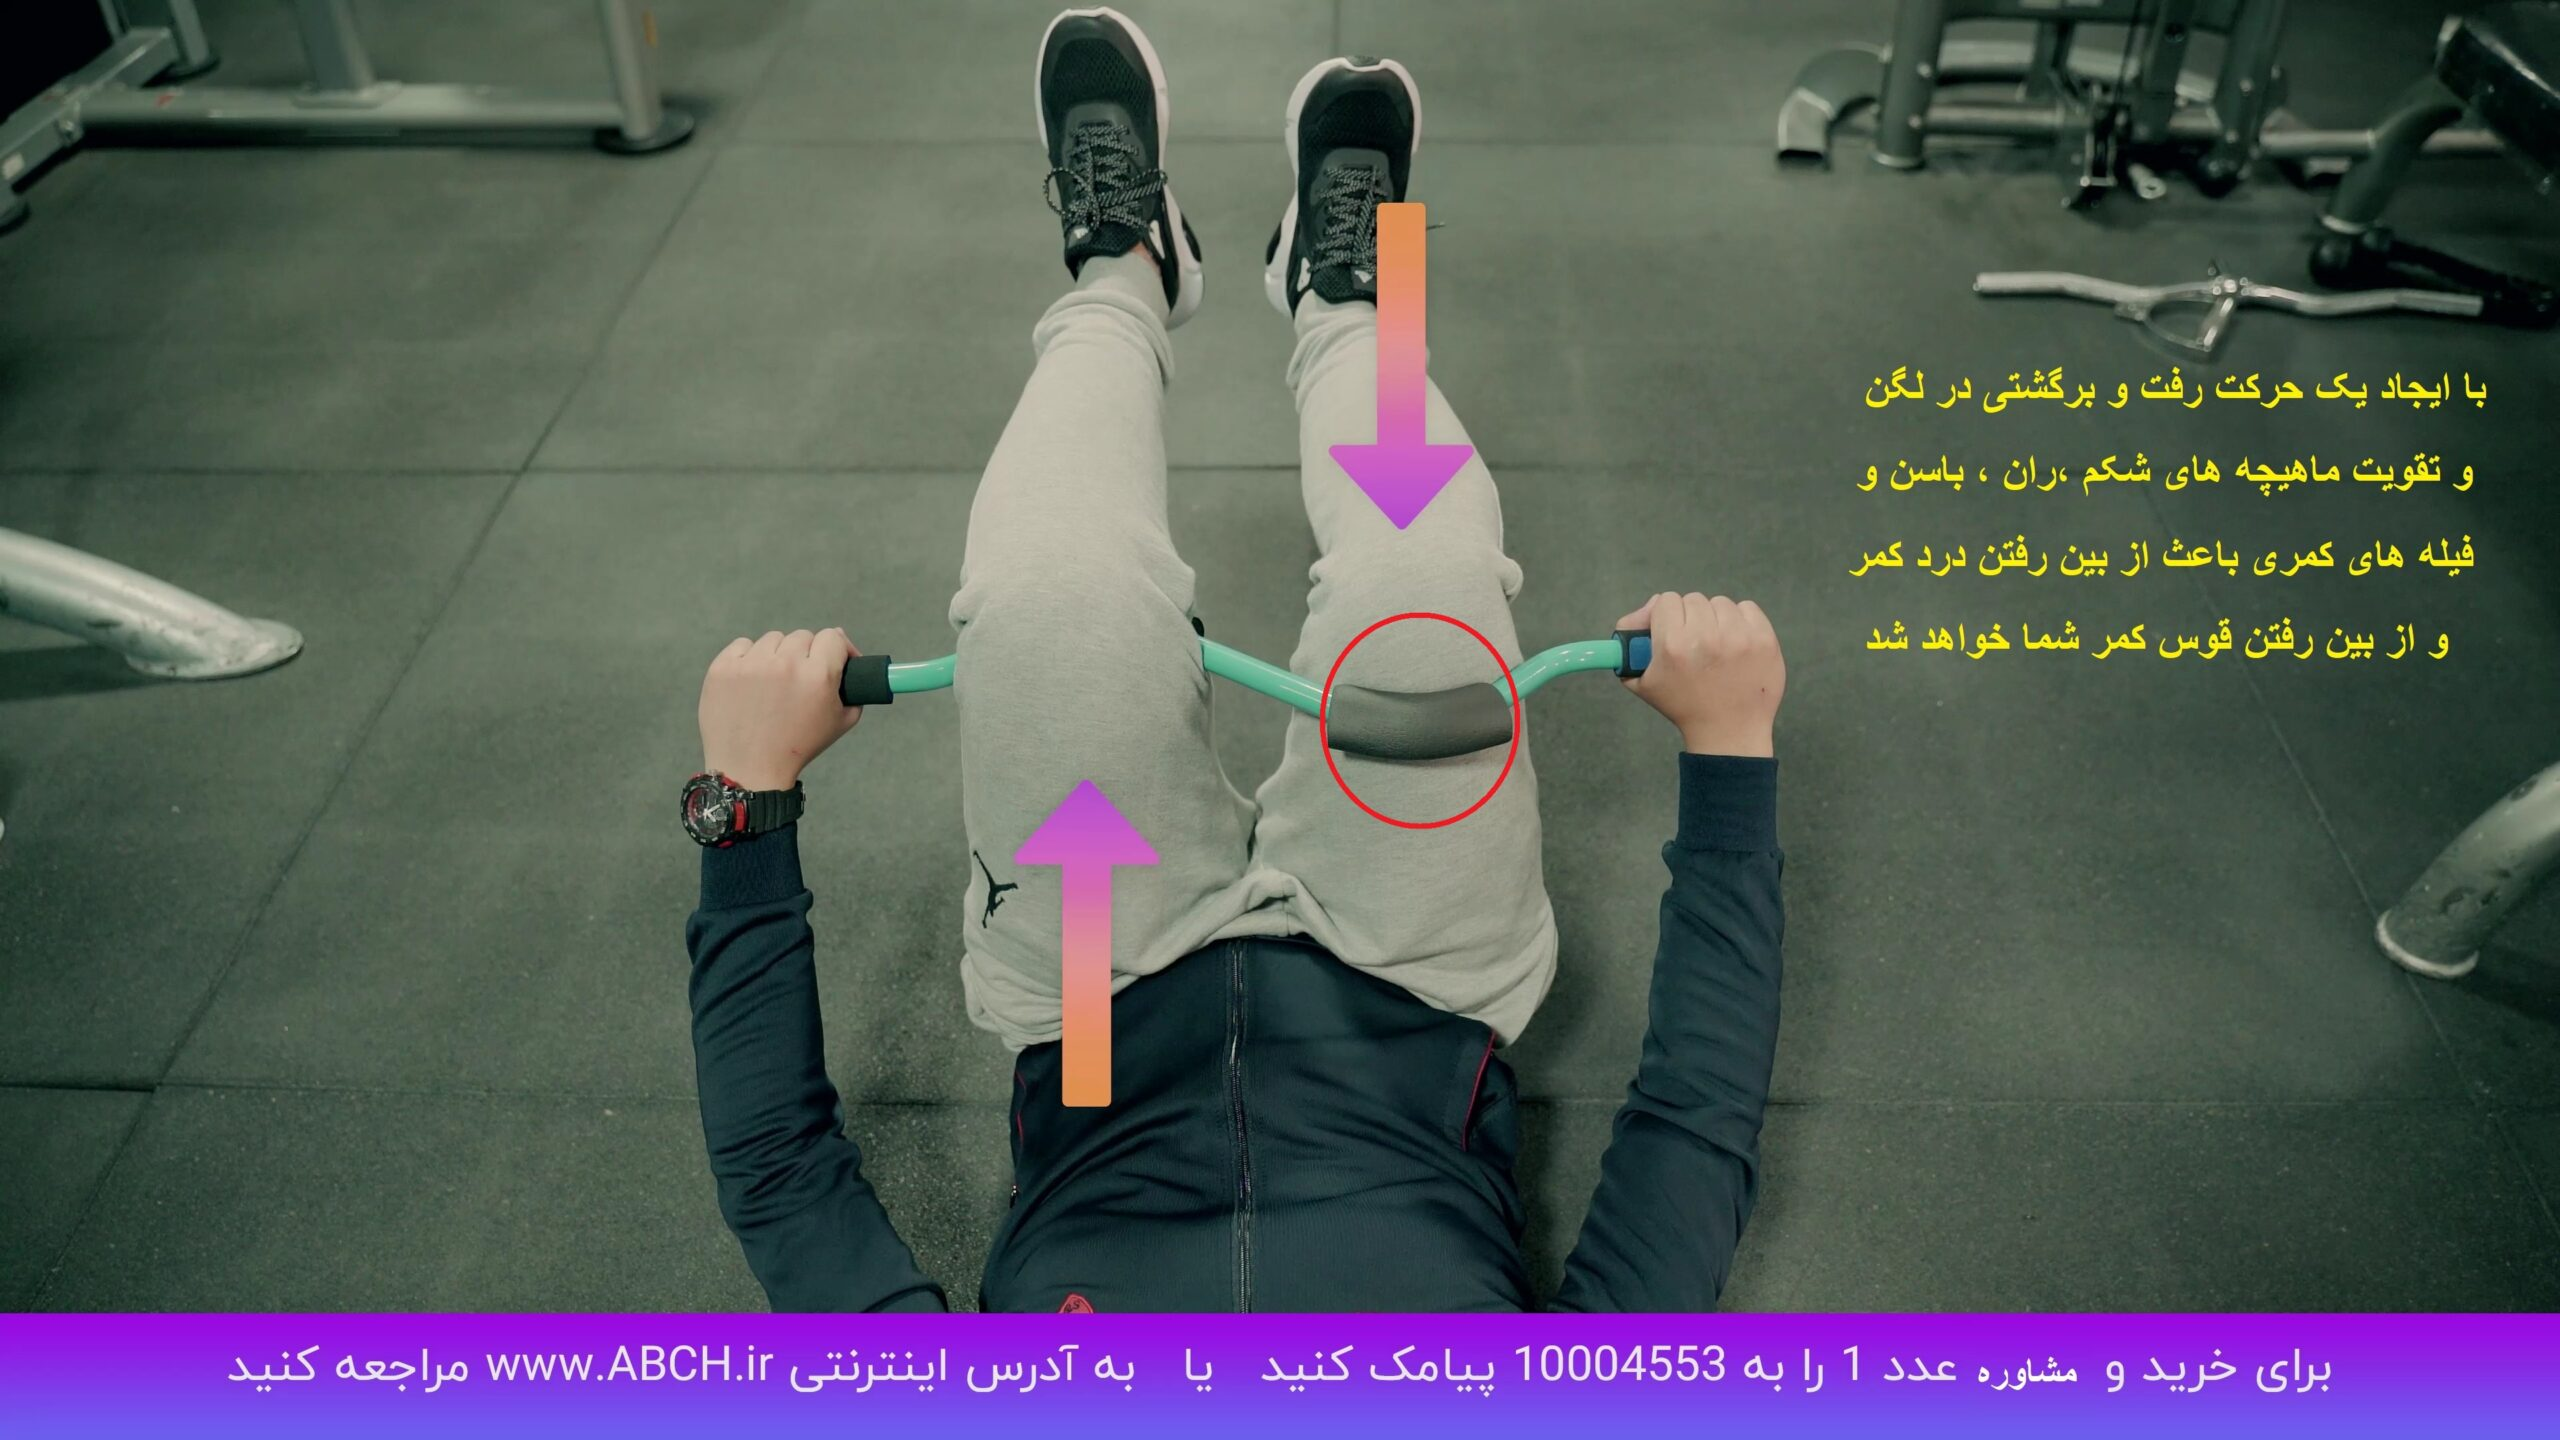 T1 T2 2160p0011392020 12 15 19 06 11 1 scaled - دستگاه قوس کمر -مدل t2